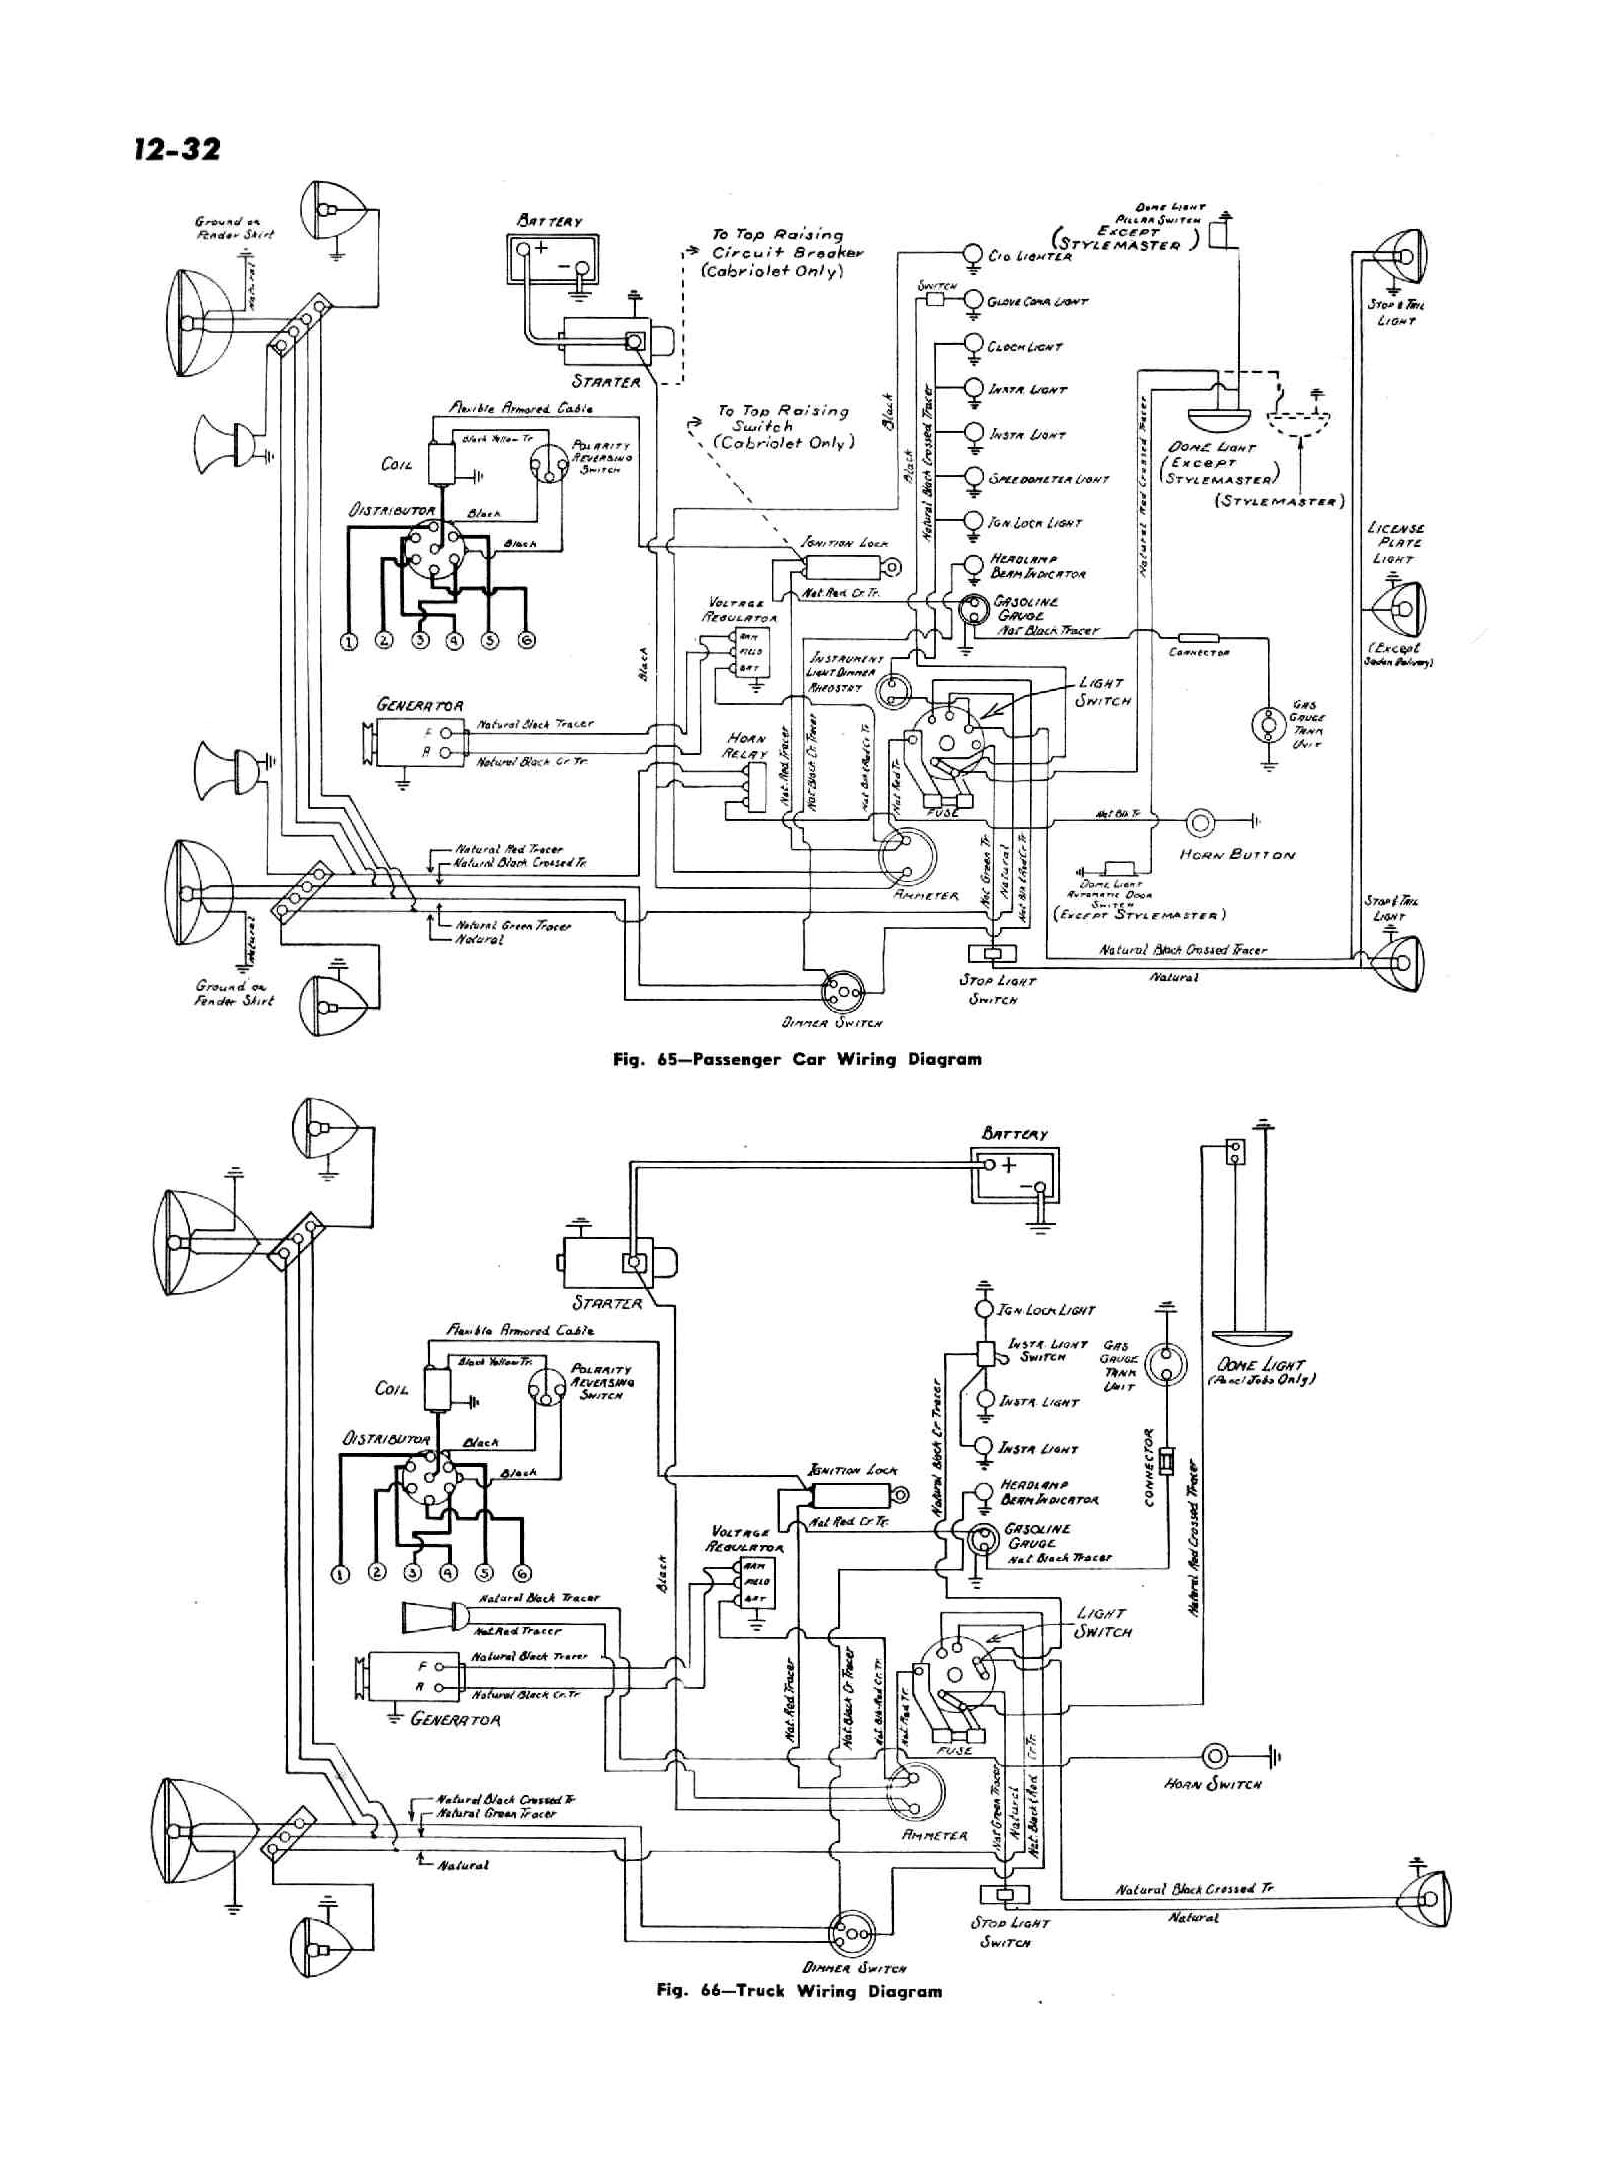 chevy horn wiring wiring diagram progresif01 chevy silverado horn diagram wiring schematic download wiring 55 chevy horn wiring chevy horn wiring